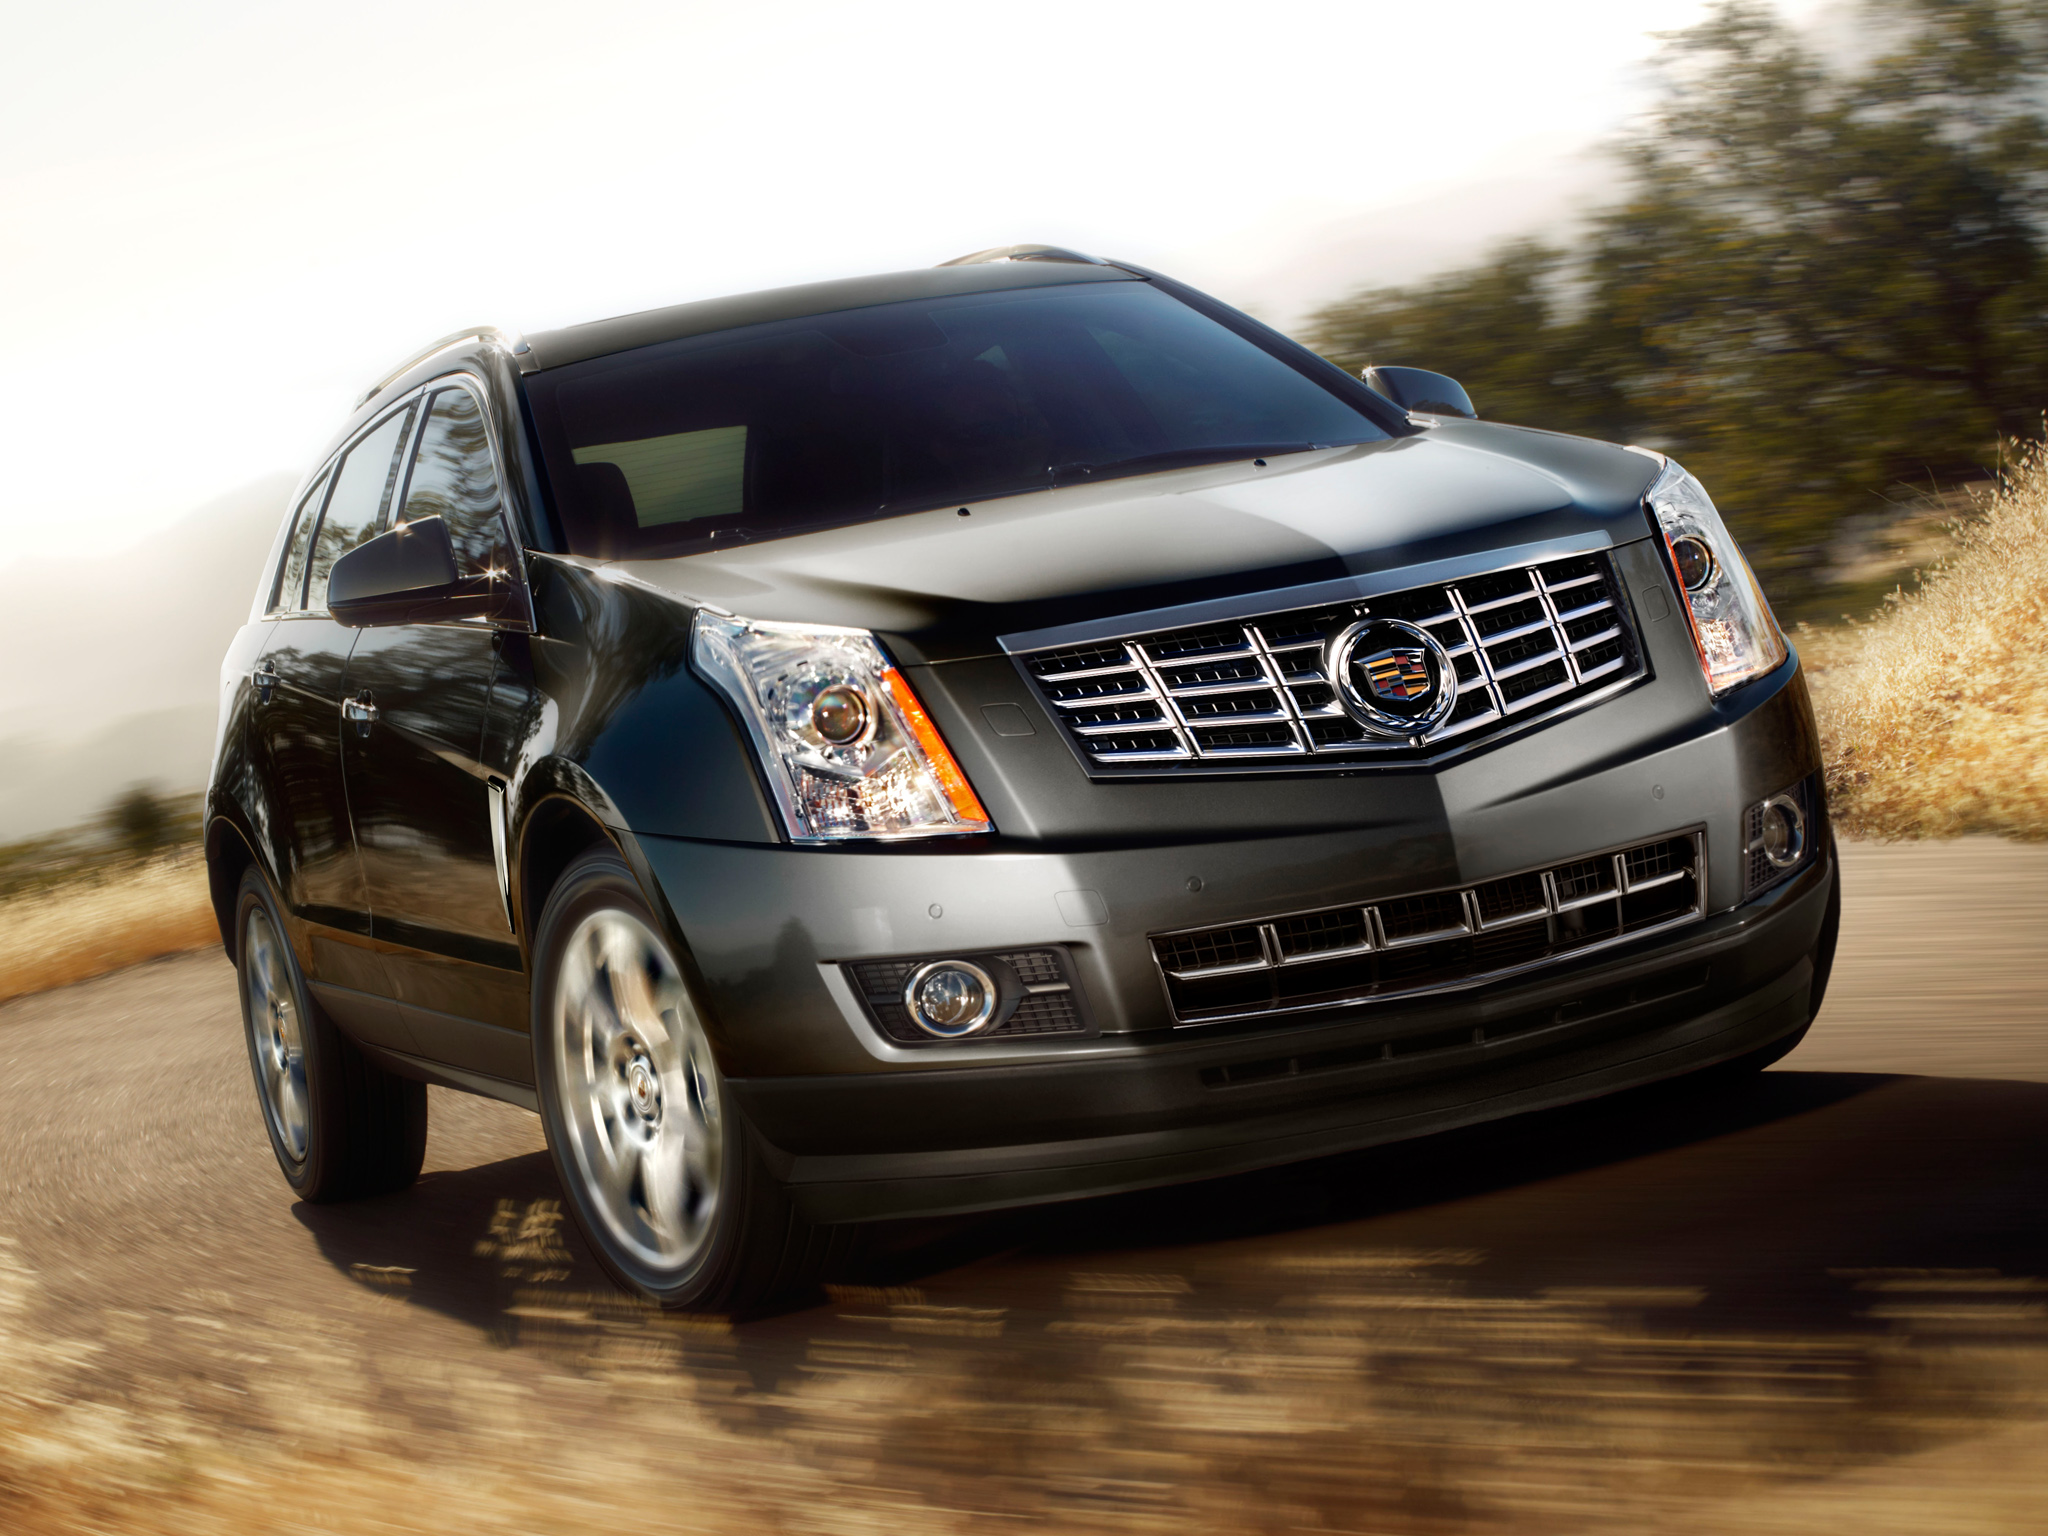 New cadillac srx pictures